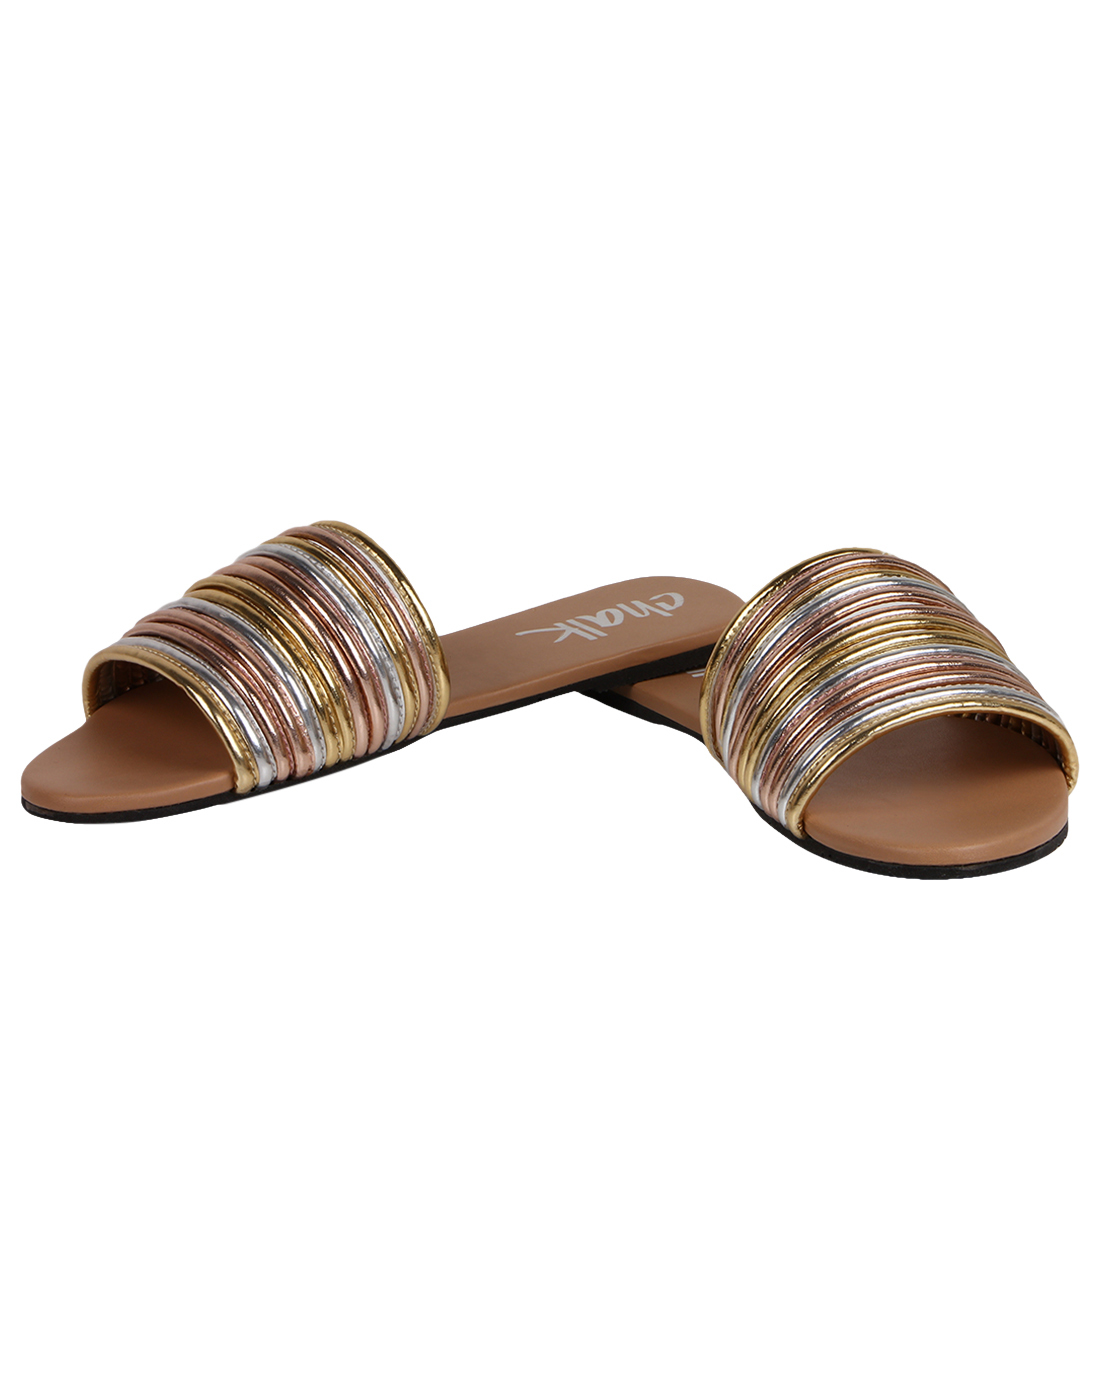 Chalk Studio Moonshine Beatiful Slip on Sandals